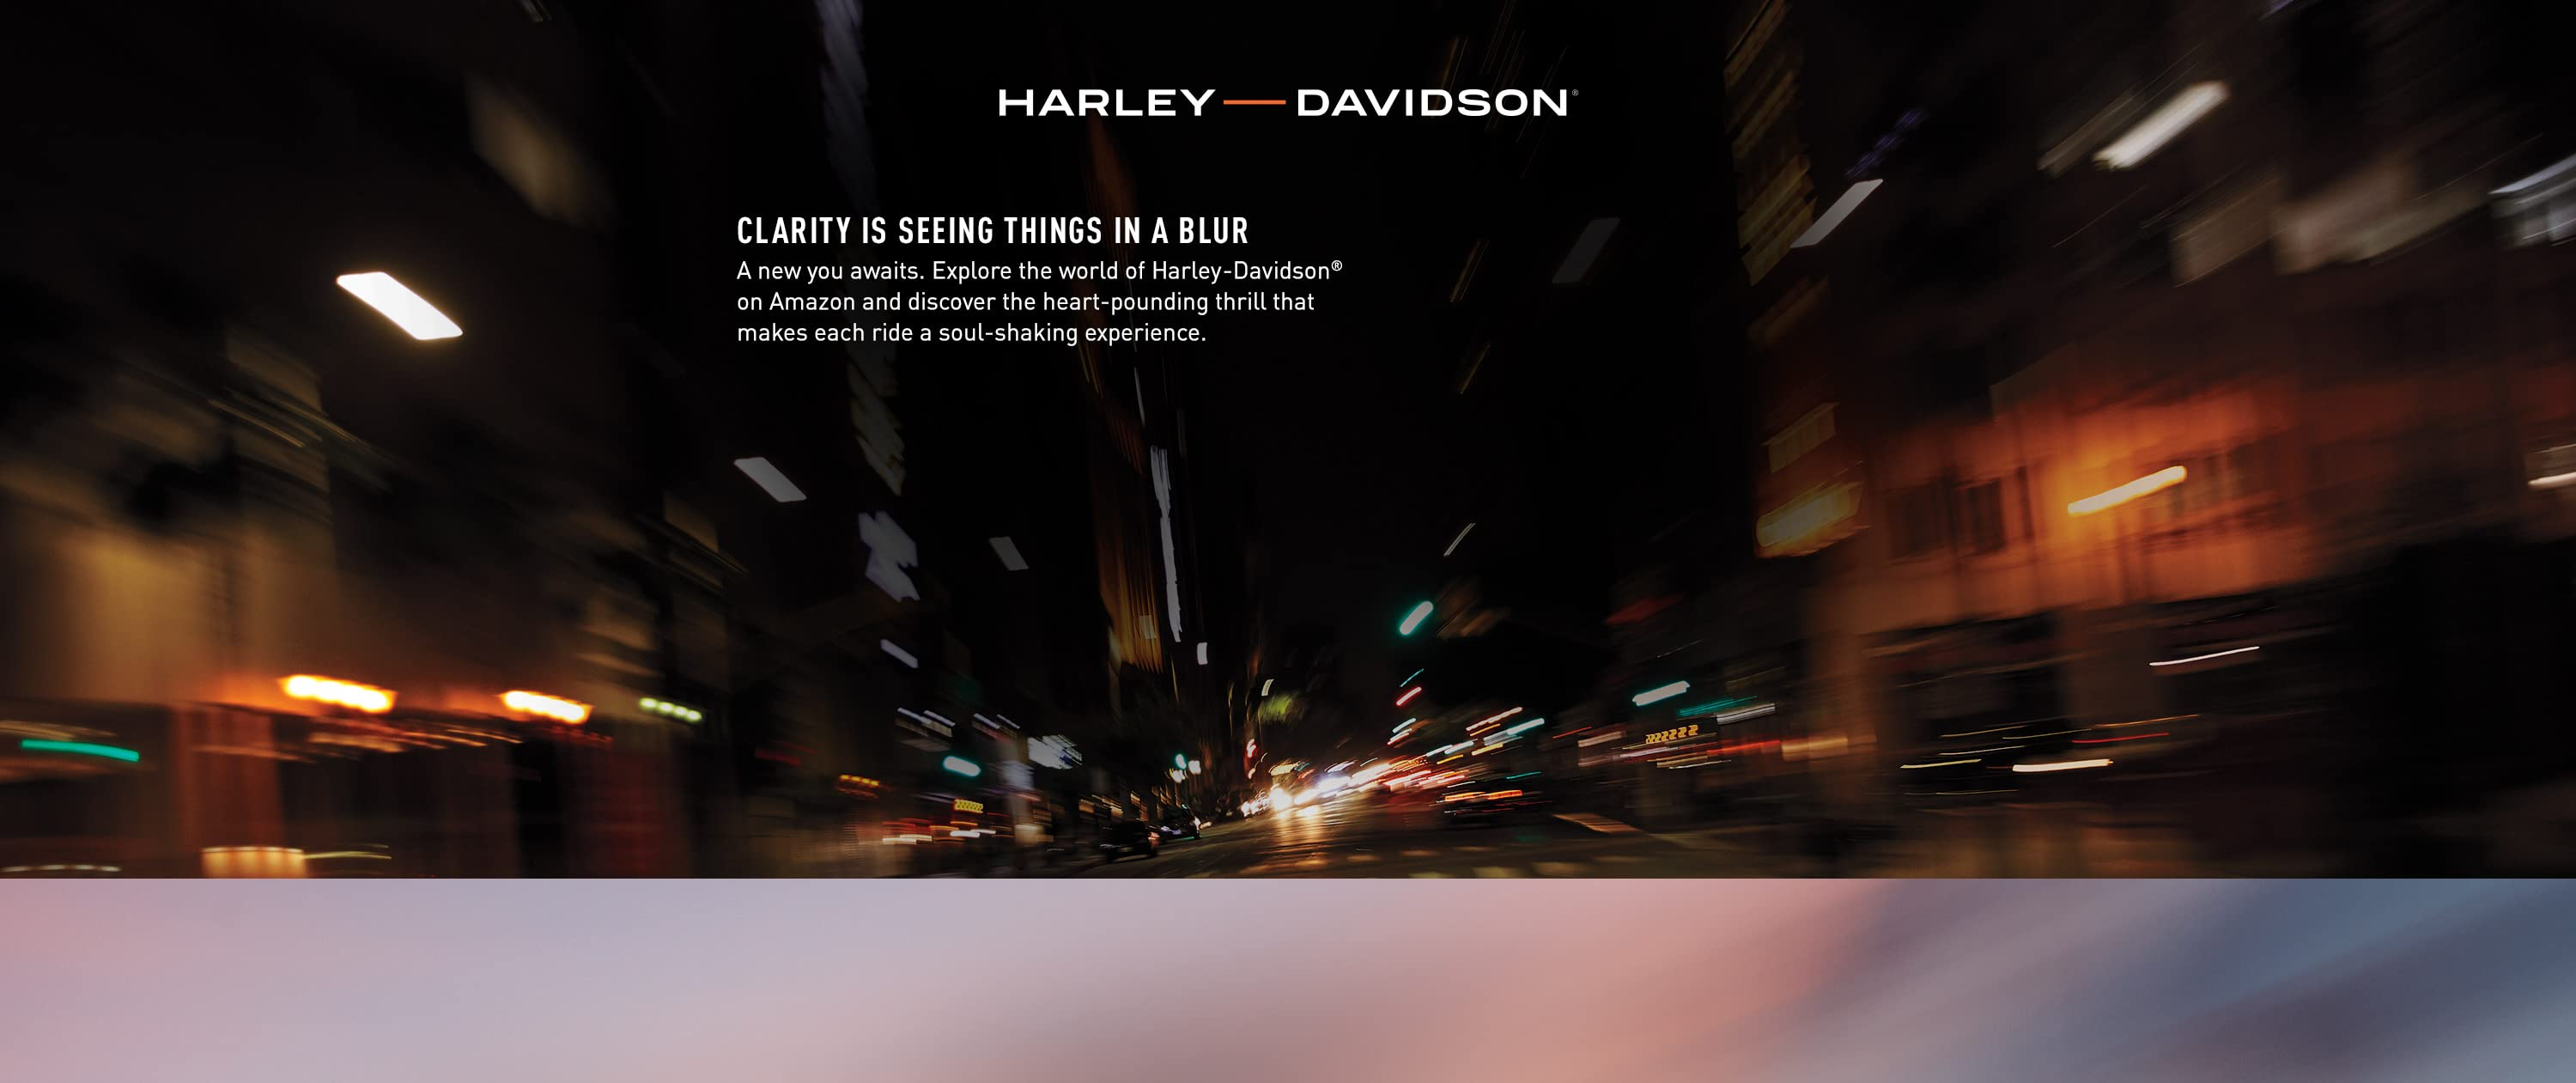 Clarity is seeing things in a blur. A new you awaits. Explore the world of Harley-Davidson on Amazon.